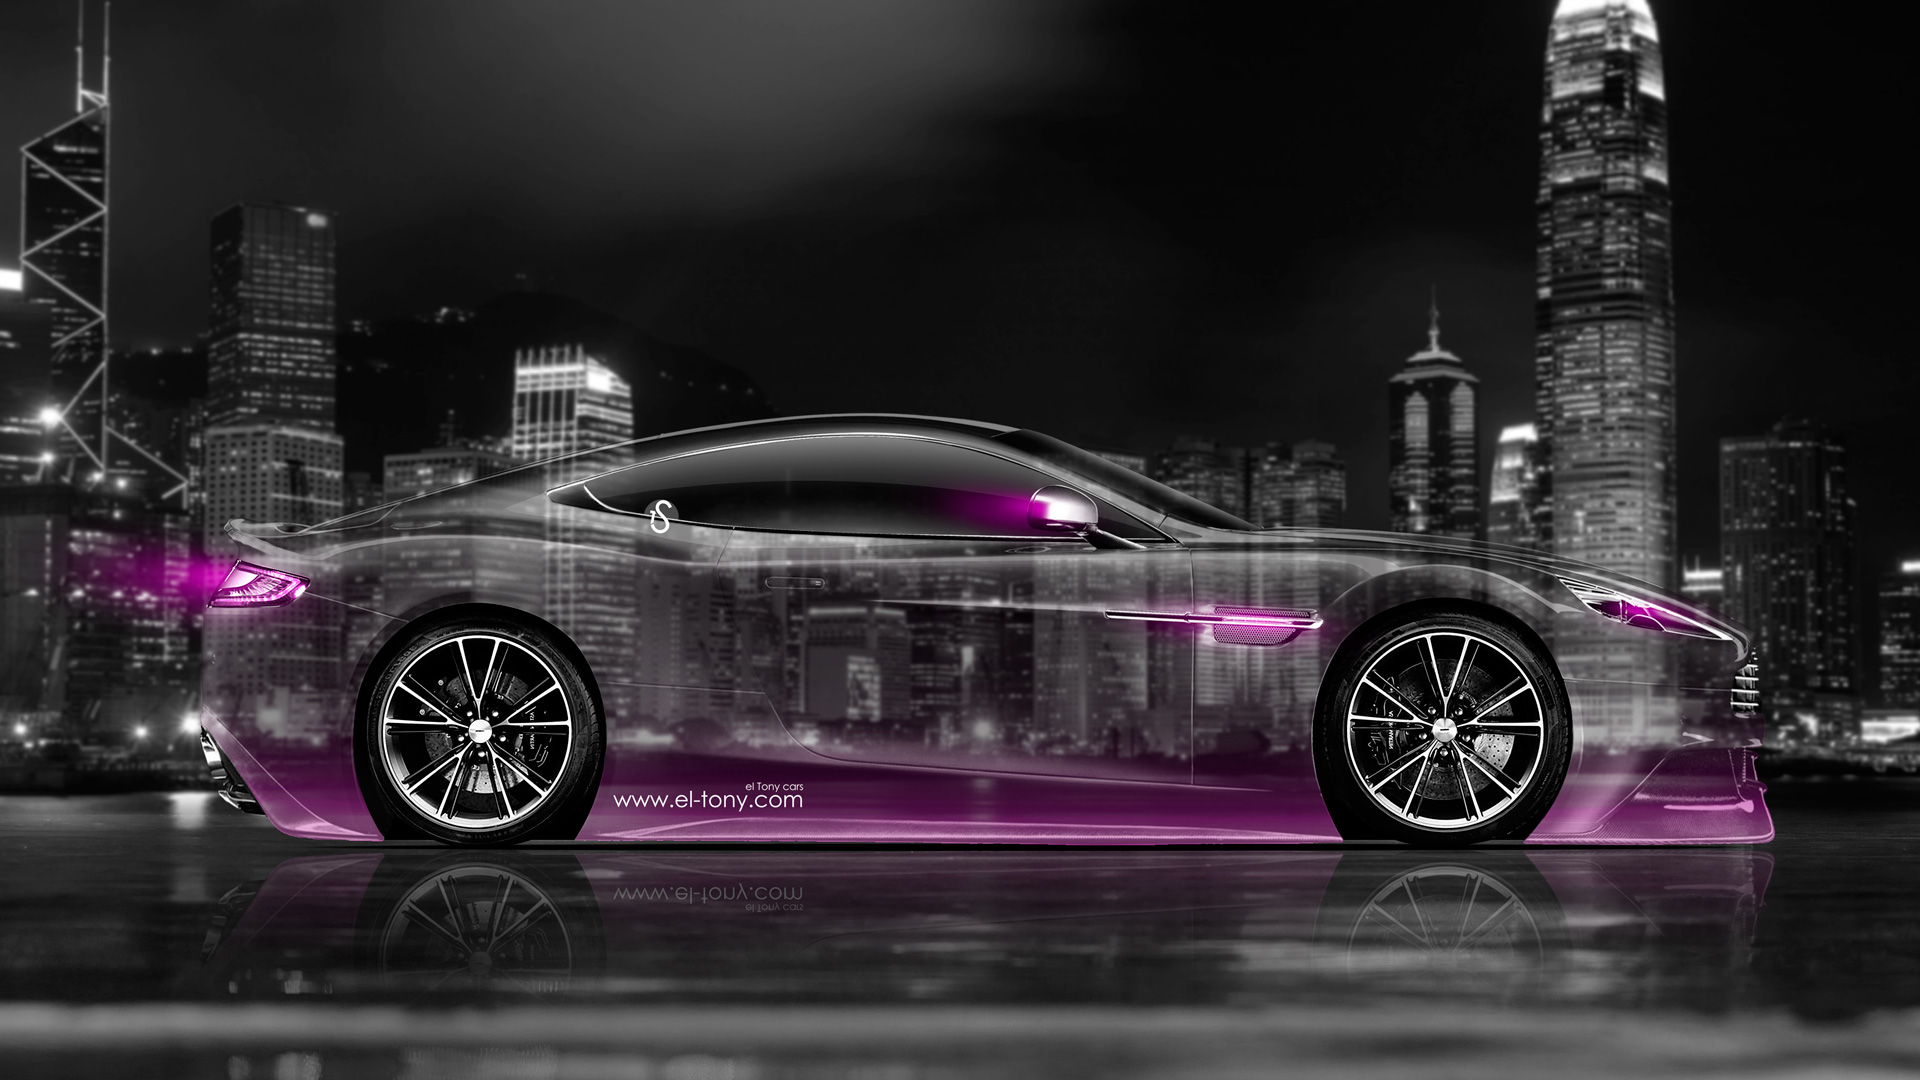 Captivating Aston Martin Vanquish Side Crystal City Car 2014  ...